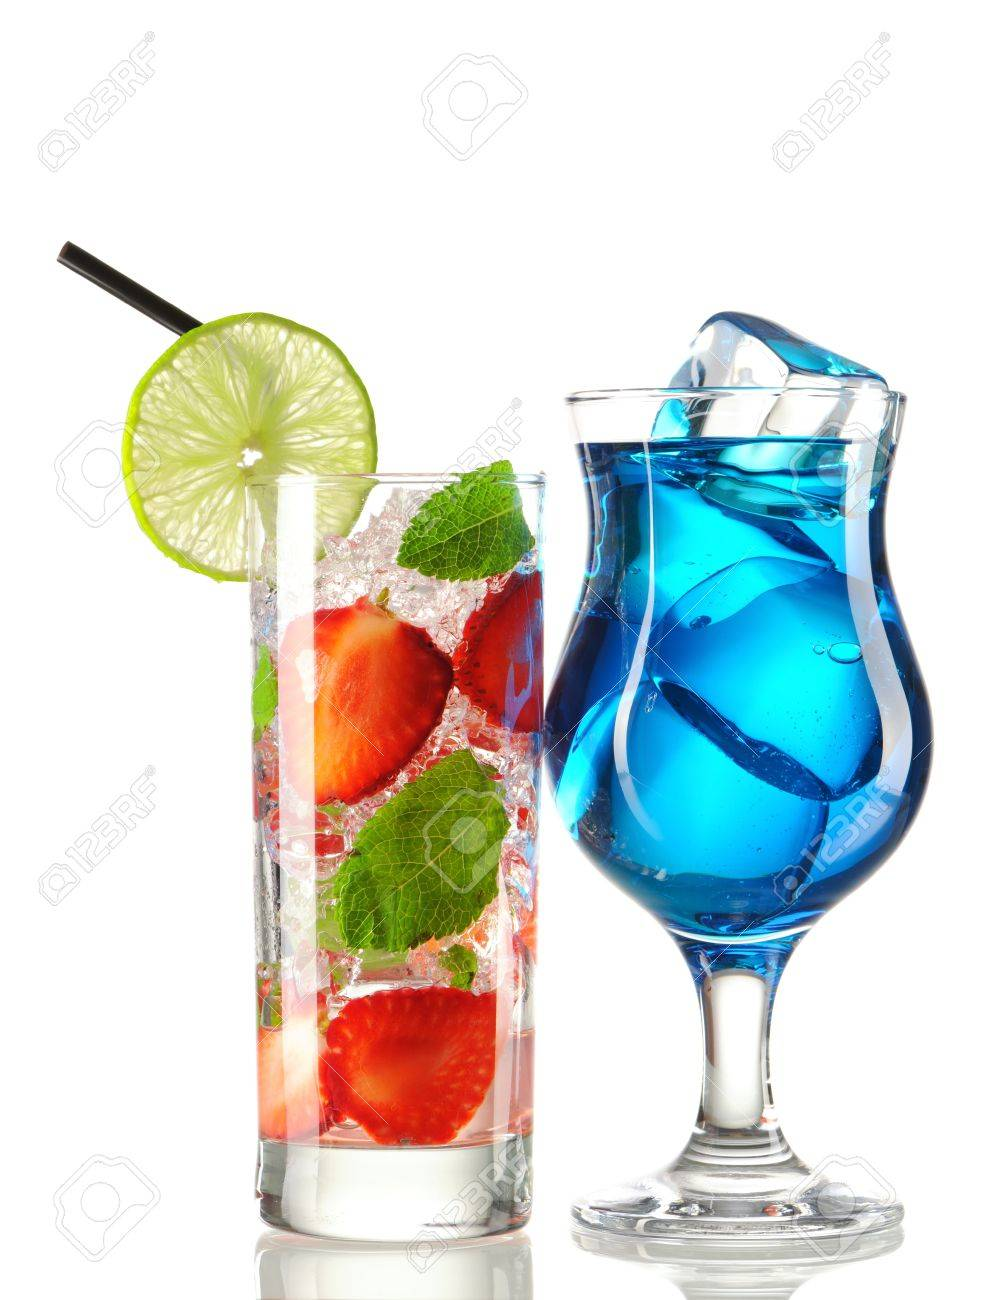 Strawberry mojito and Blue Curacao cocktails isolated on white Stock Photo - 9954064